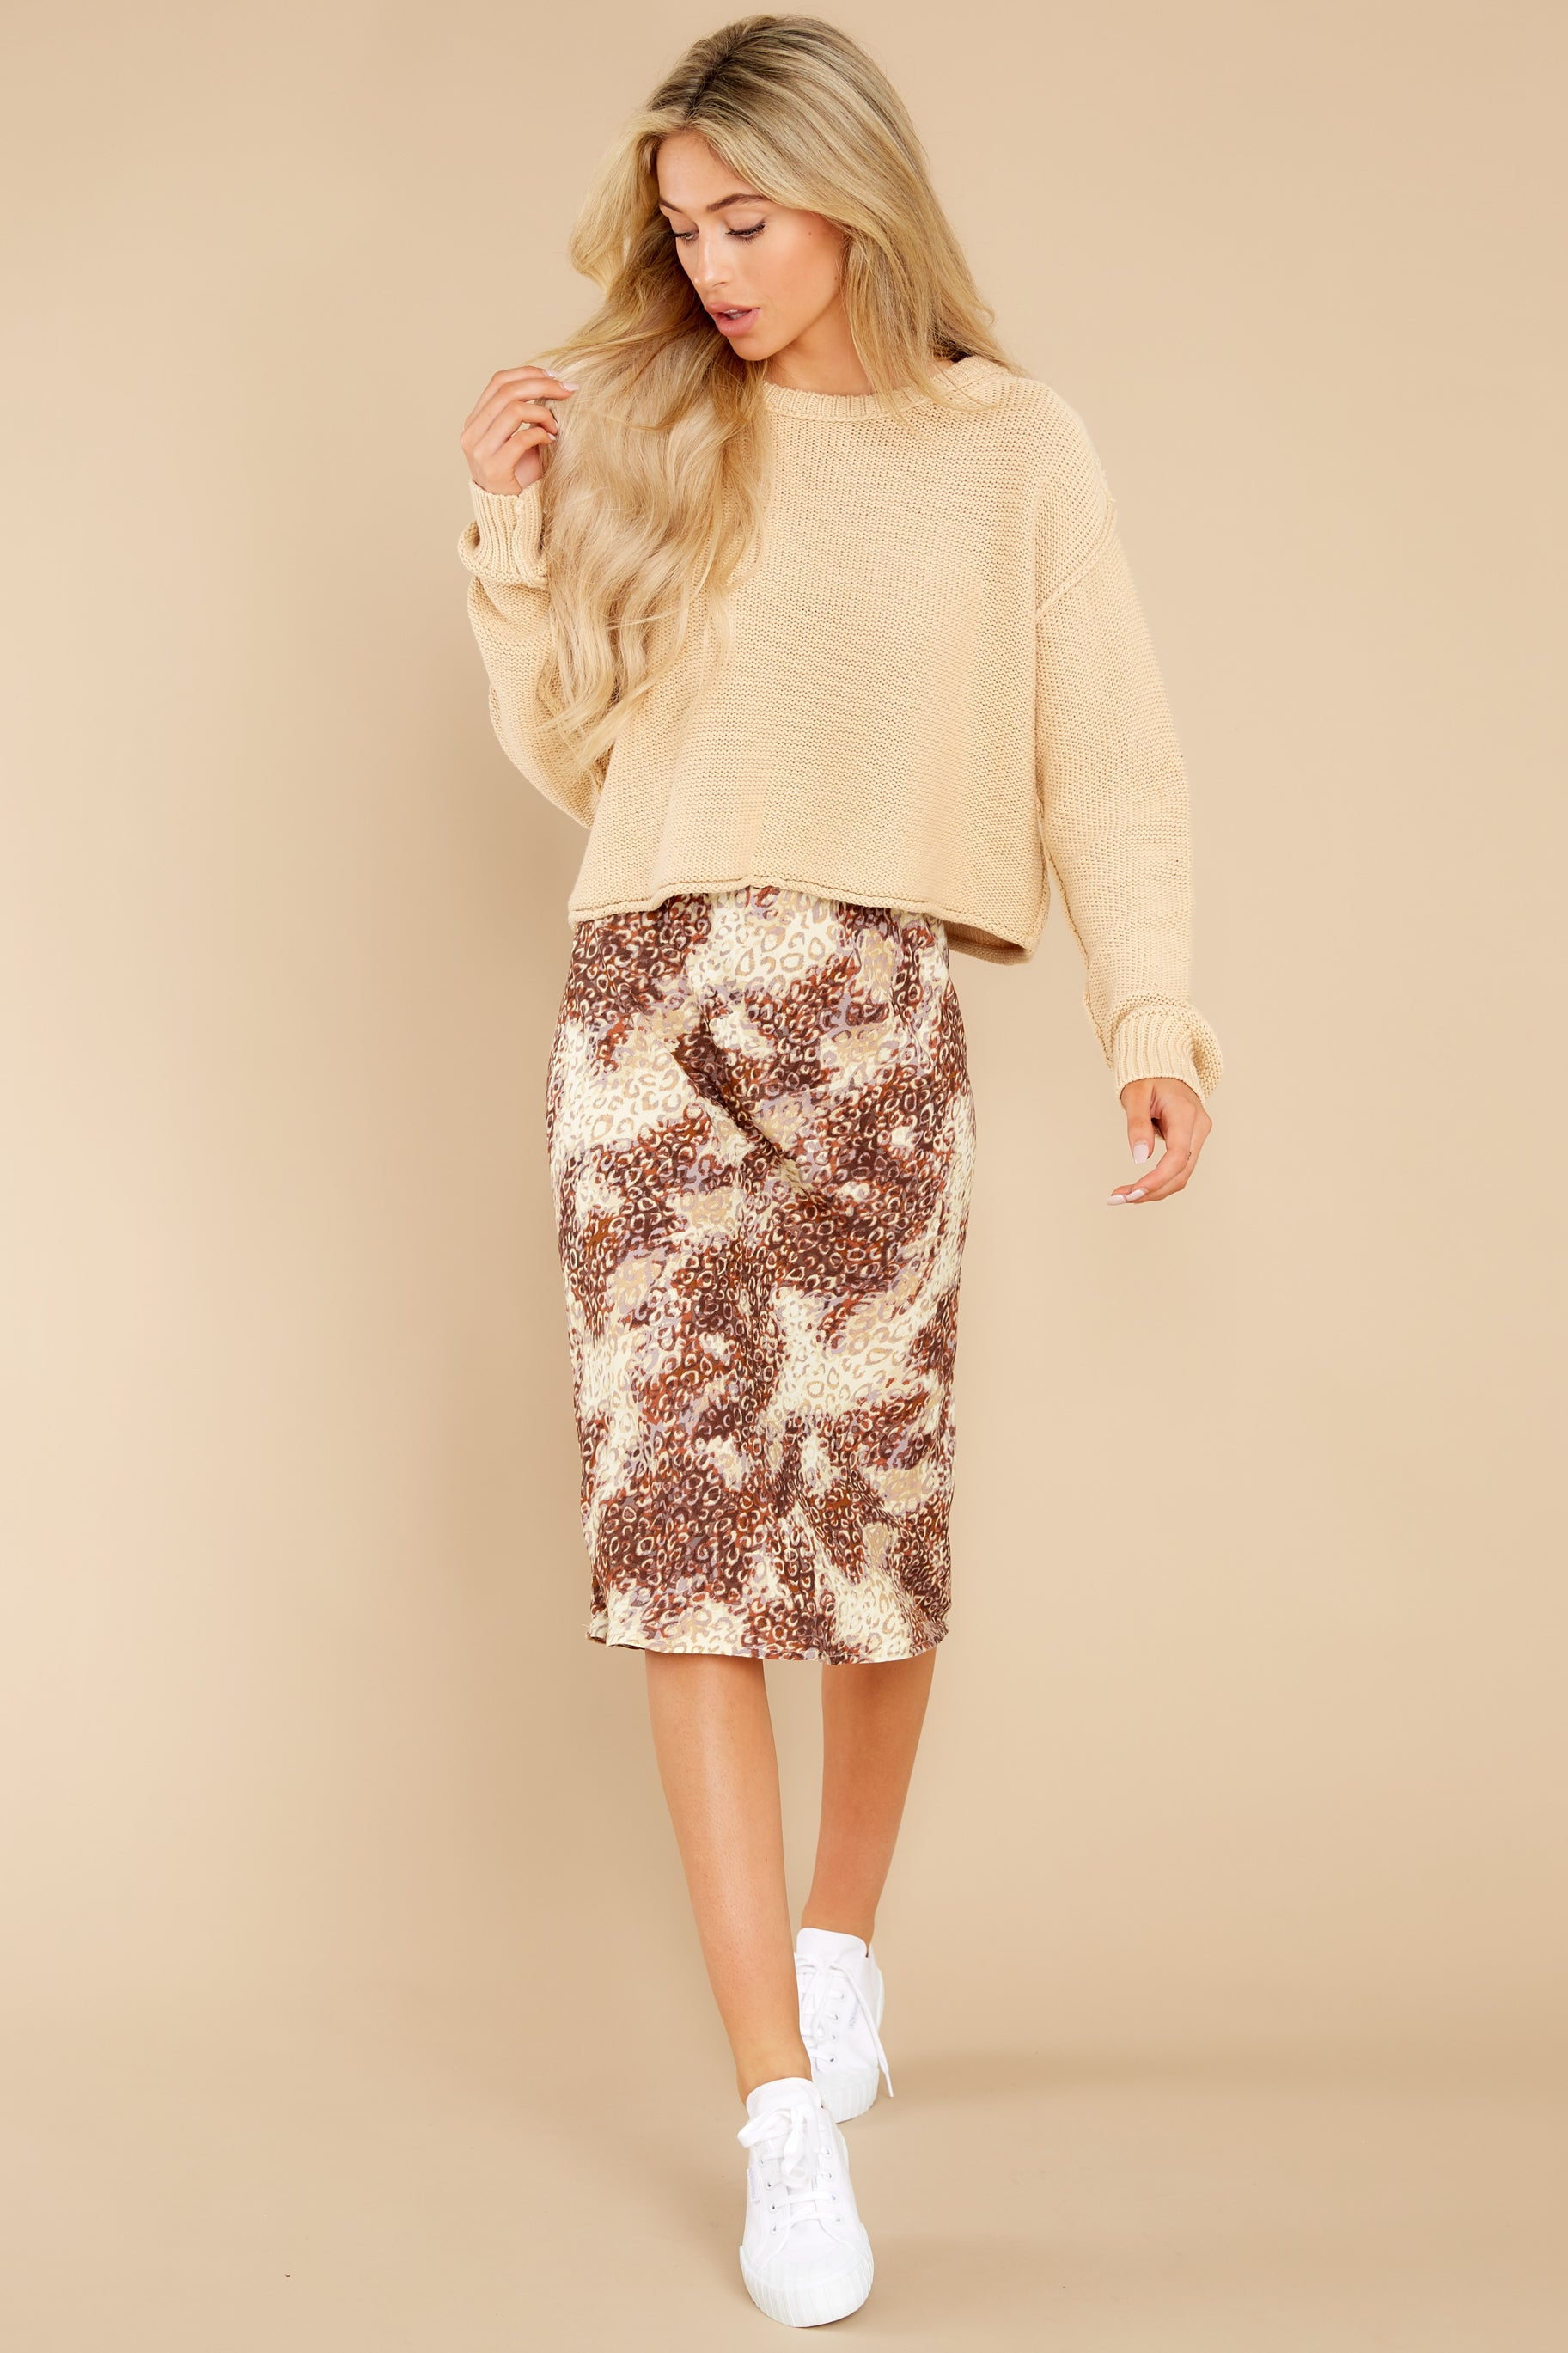 5 On The Mark Multi Print Midi Skirt at reddress.com